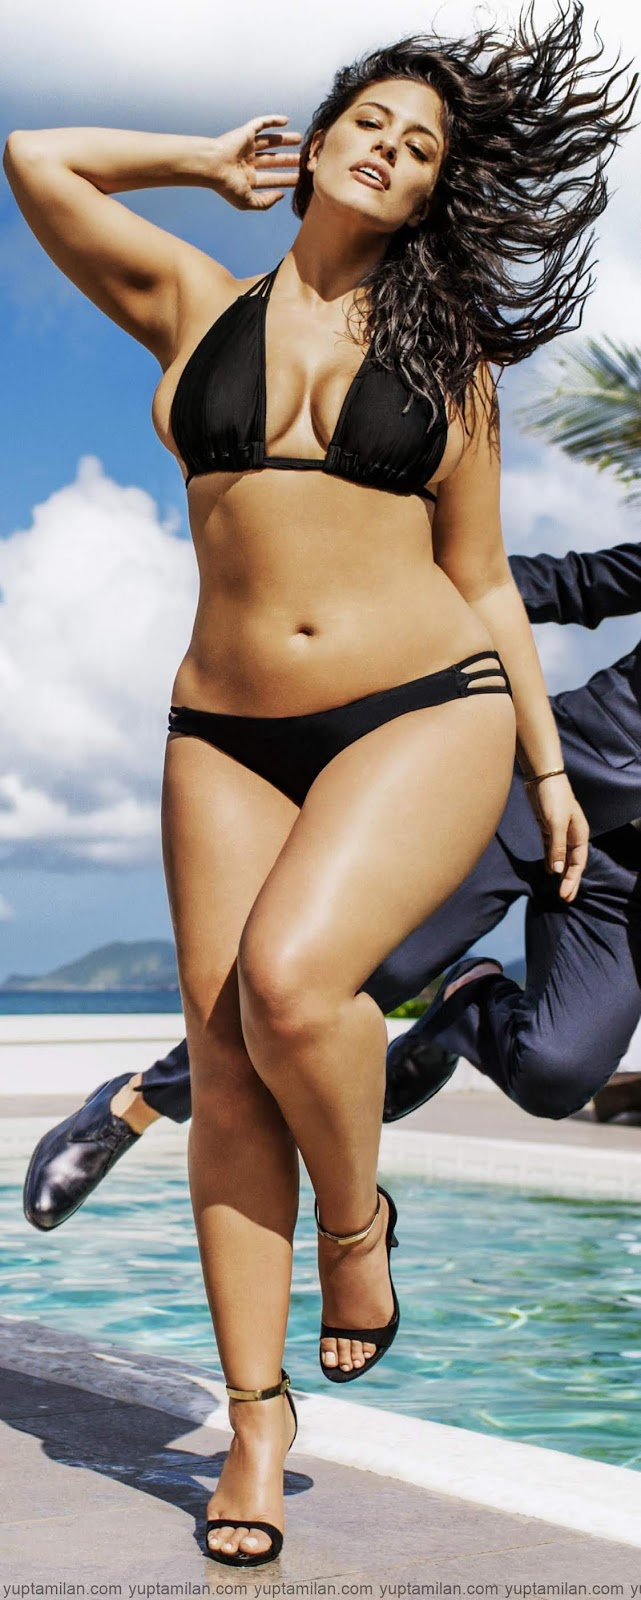 American Model-Ashley-Graham-Bikini-Bra-Photos-HD-Swimwear-Beach-Images